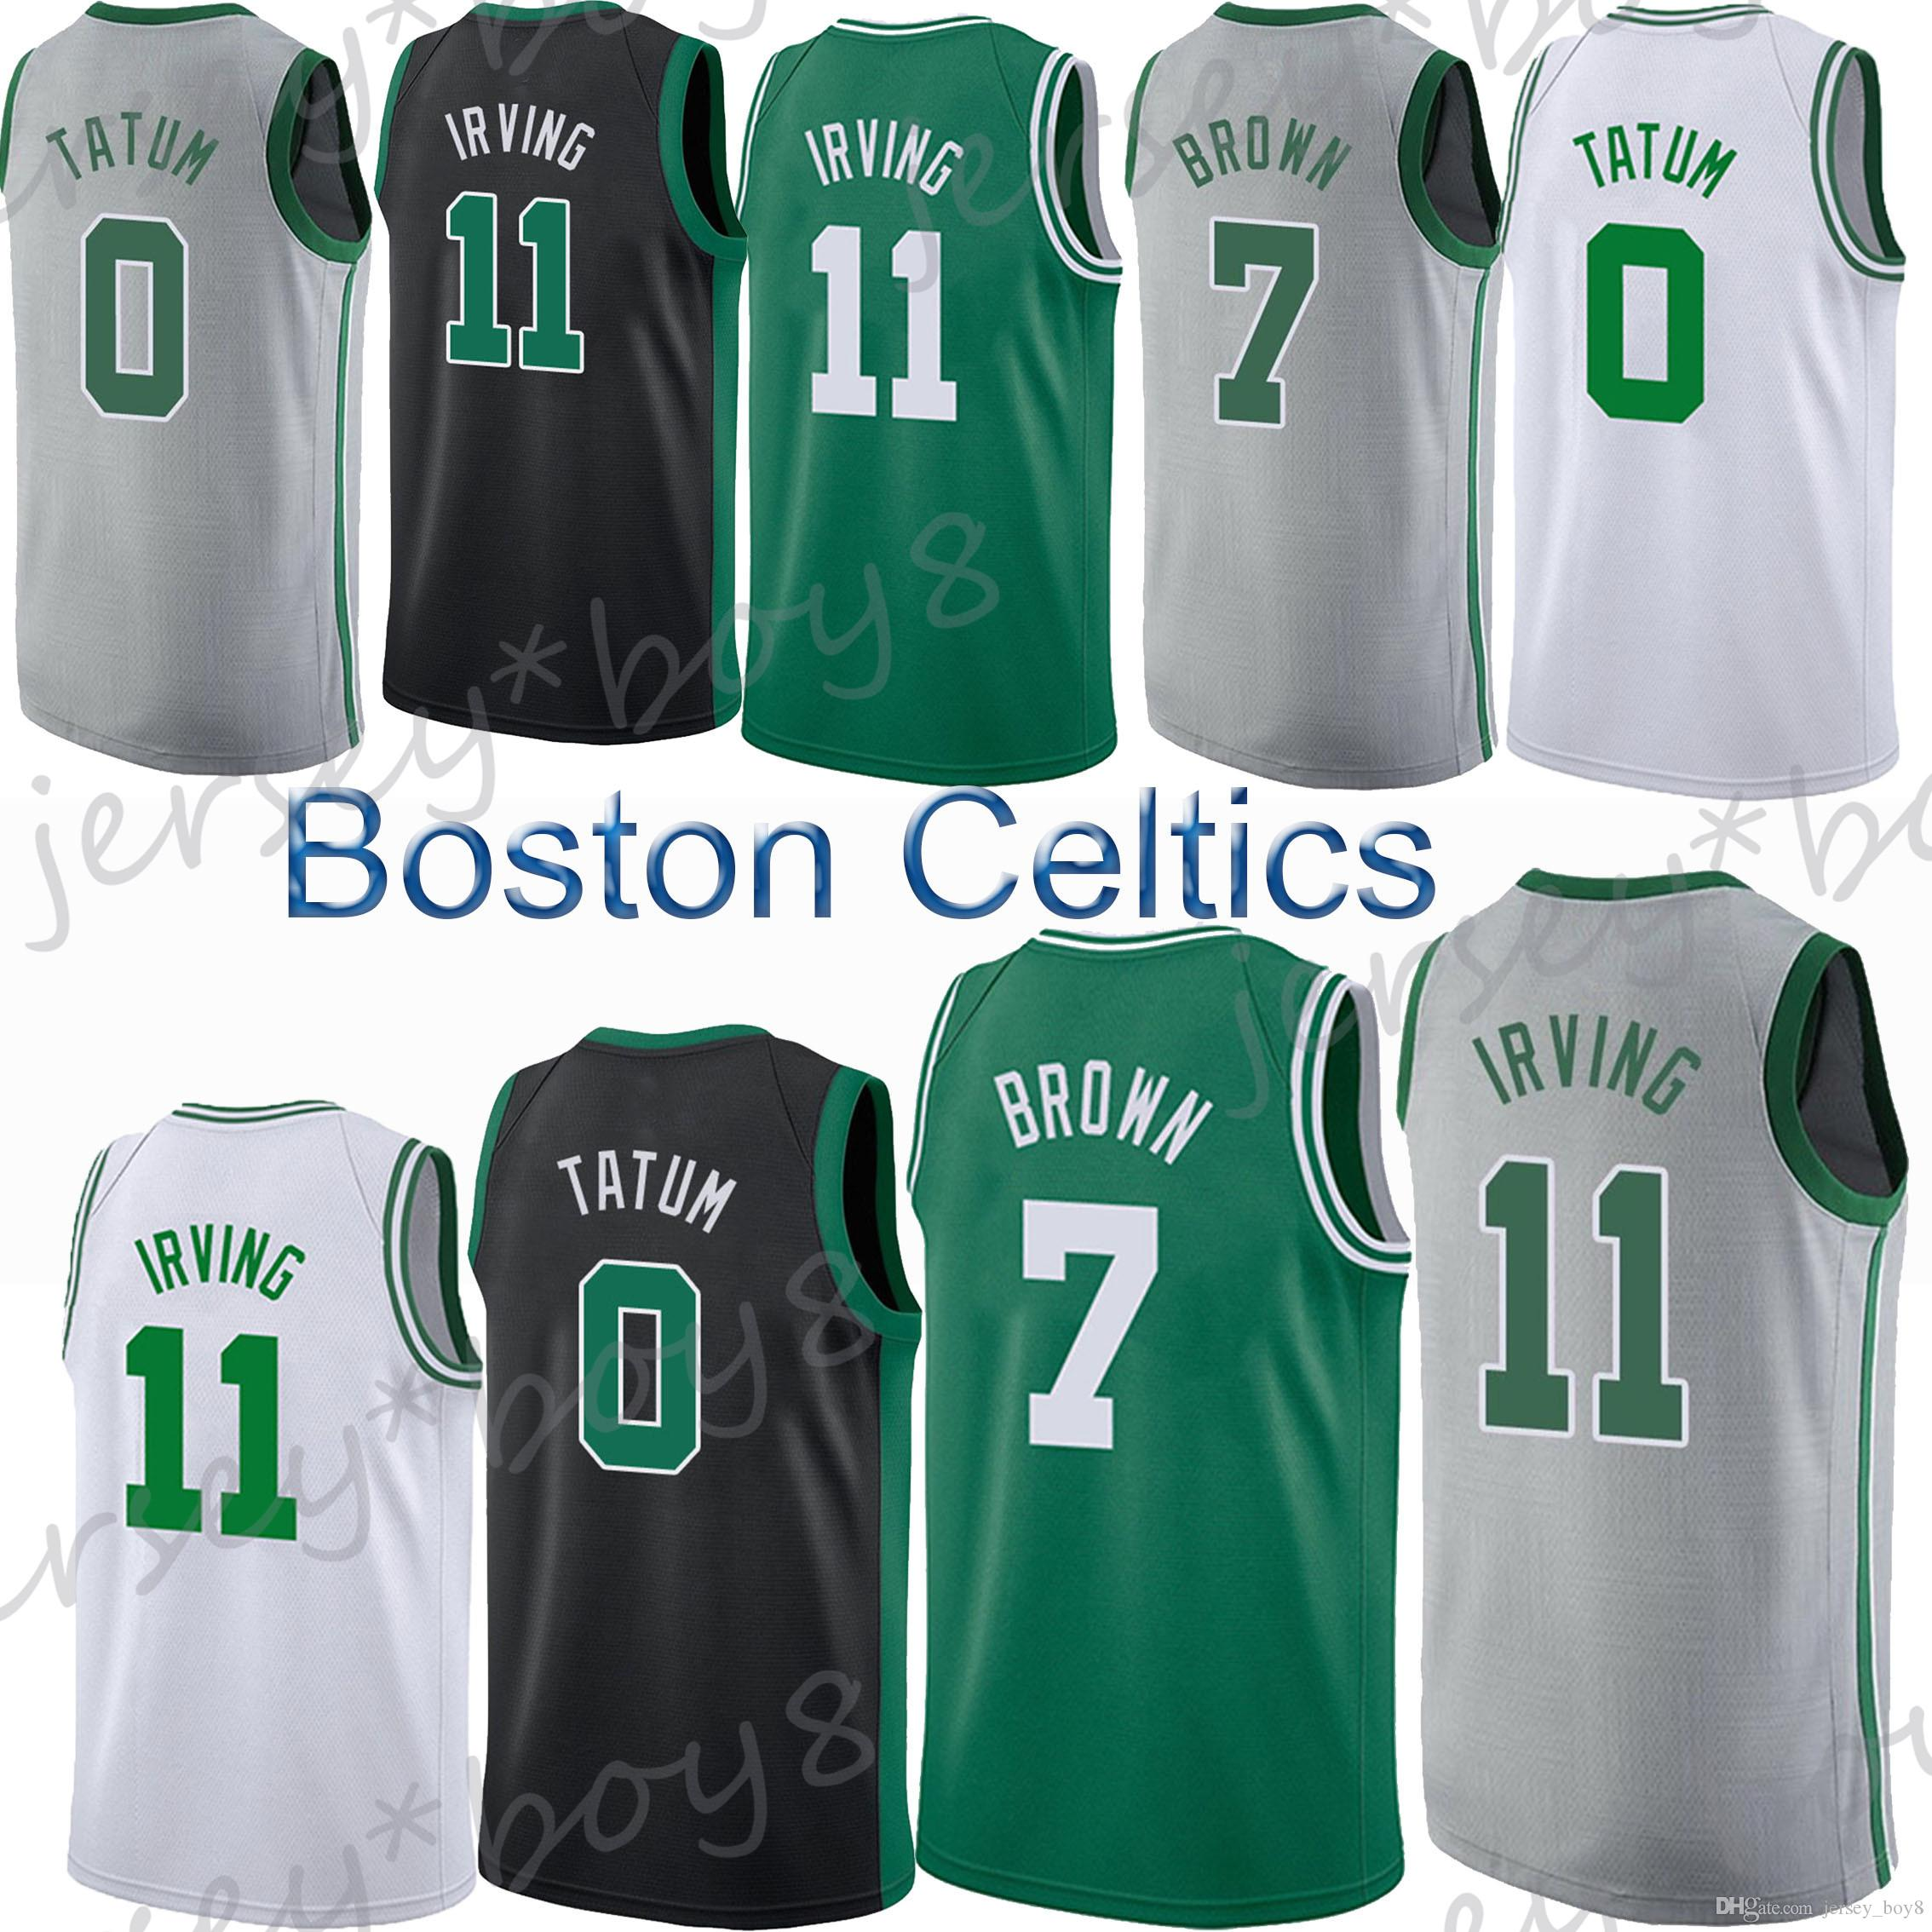 c298985c7 ... australia boston celtics 0 jayson tatum jersey 11 kyrie irving jerseys  7 jaylen brown 20 gordon